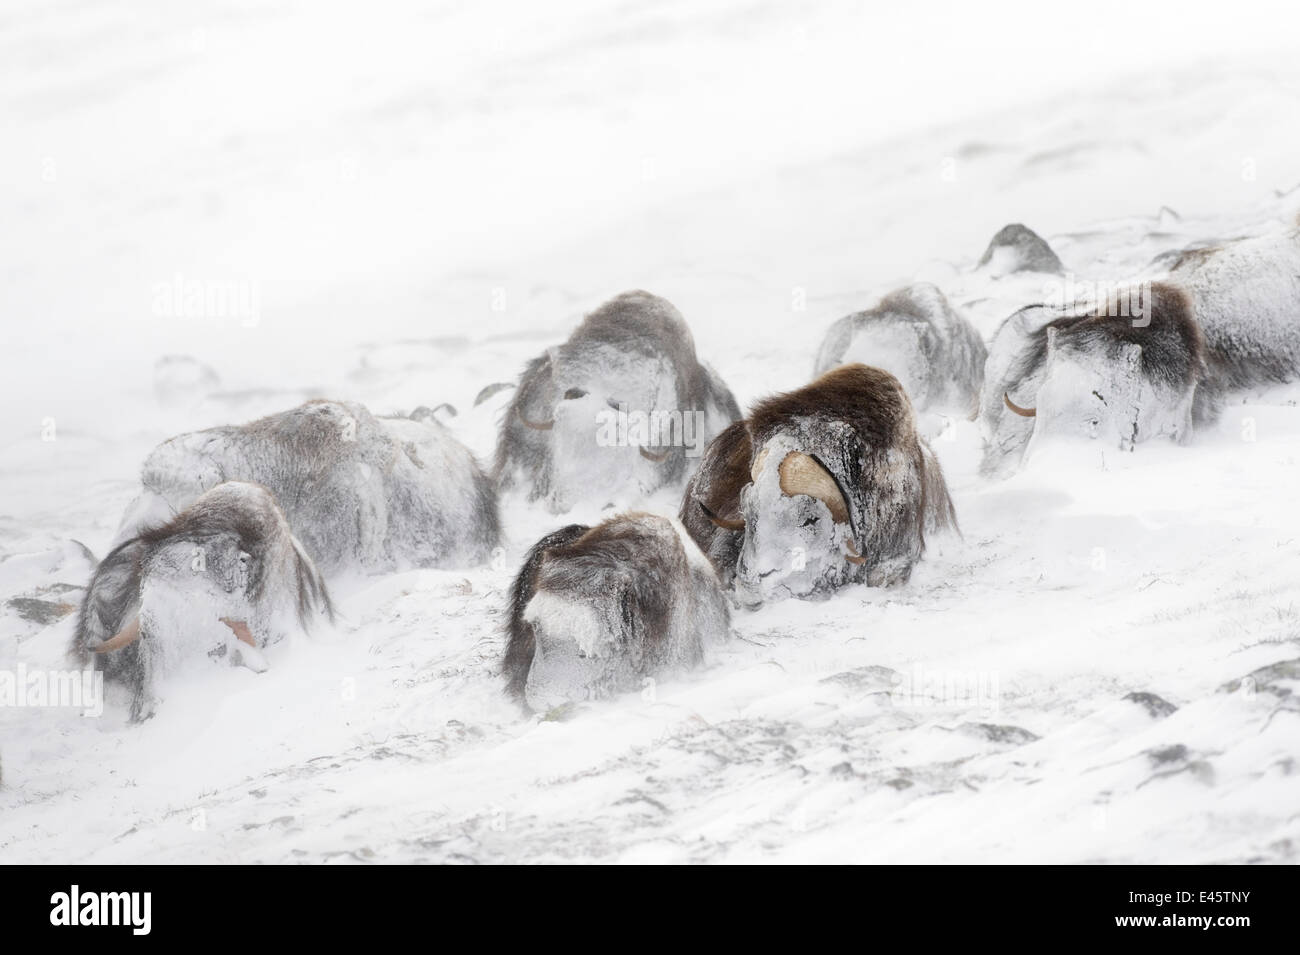 Musk ox (Ovibos moschatus) snowed in in snow storm, Dovre-Sunndalsfjella National Park,  Norway - Stock Image